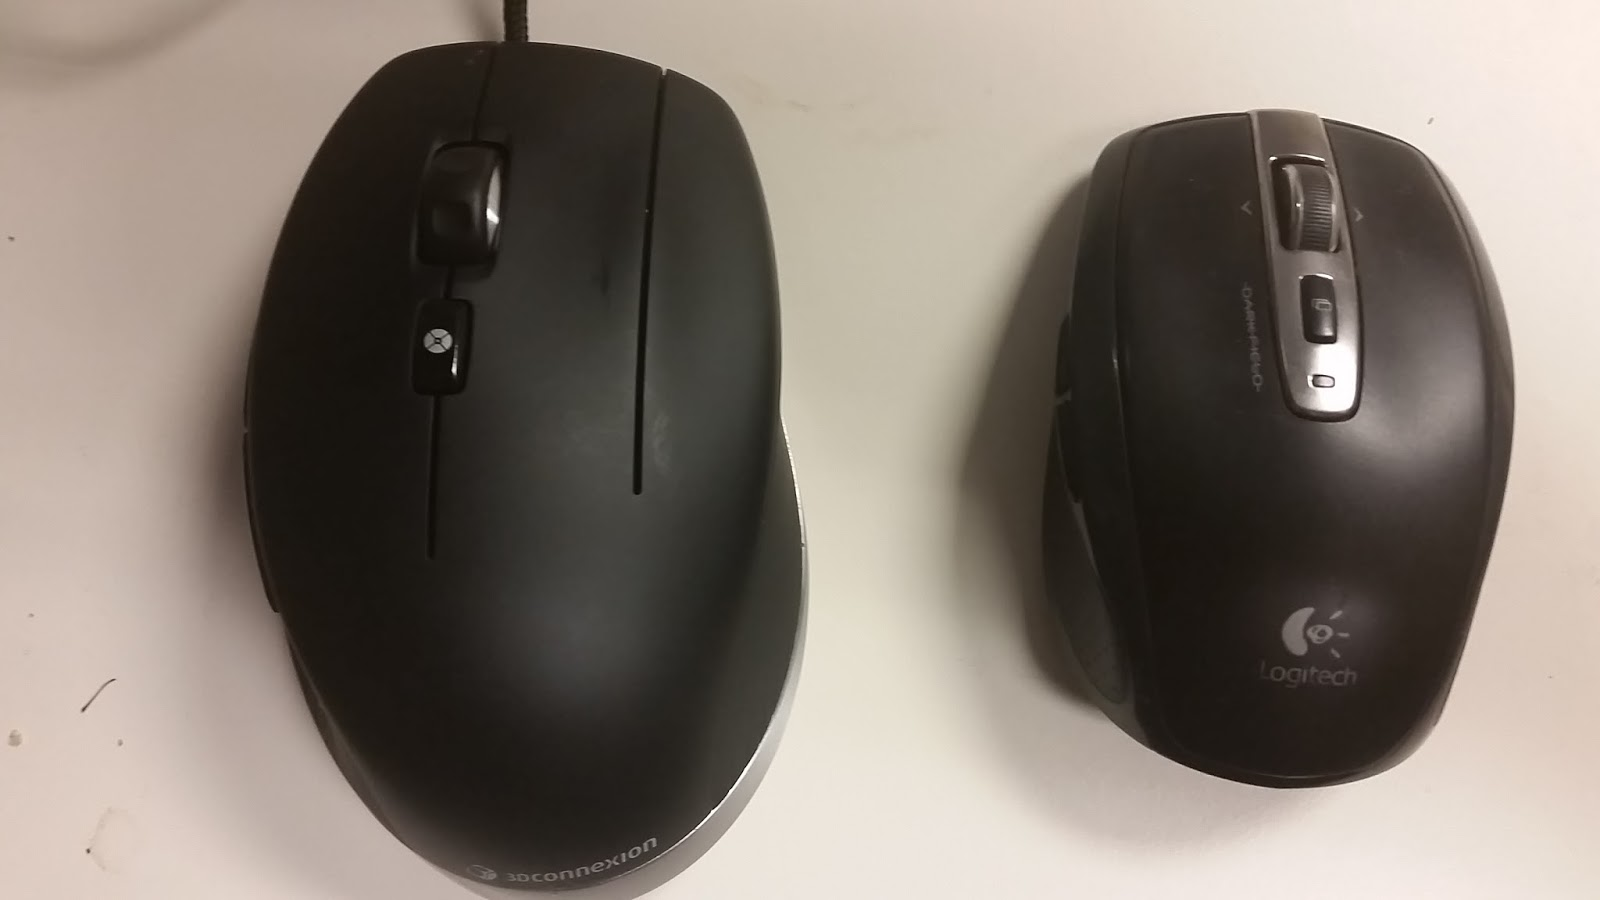 My Test Drive of a 3Dconnexion CadMouse ~ Inventor Tales